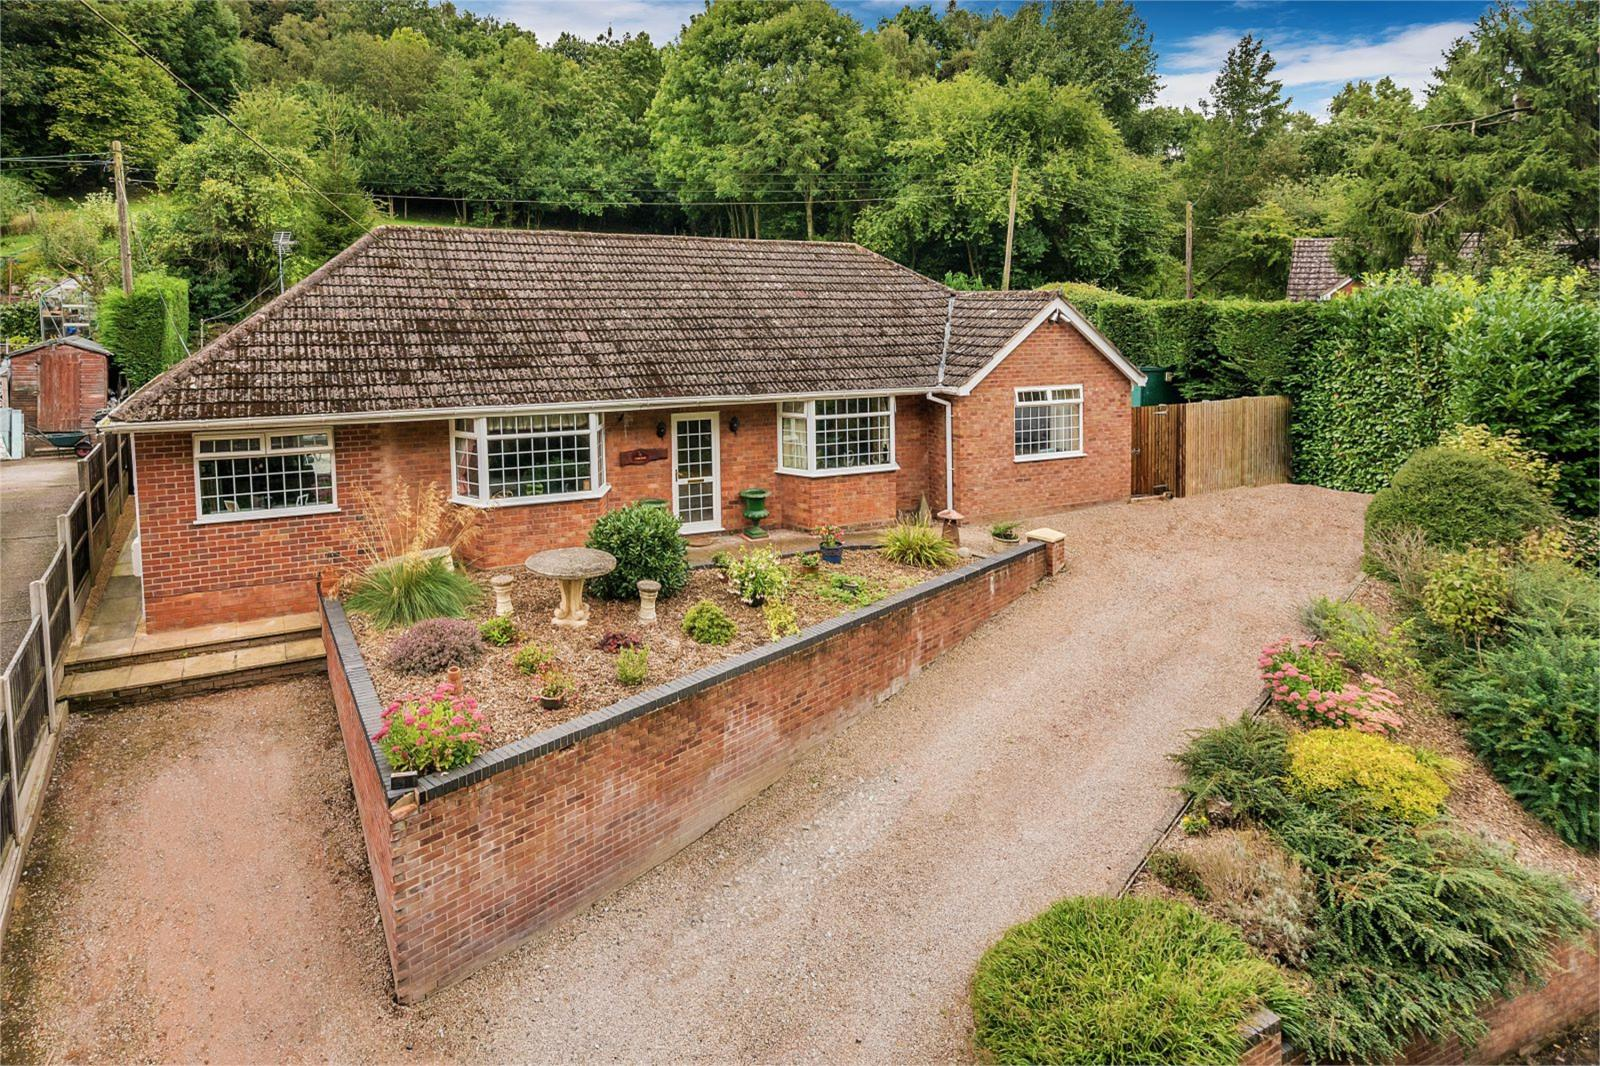 4 Bedrooms Detached Bungalow for sale in Ambleside, Bridge Road, Benthall, Broseley, Shropshire, TF12